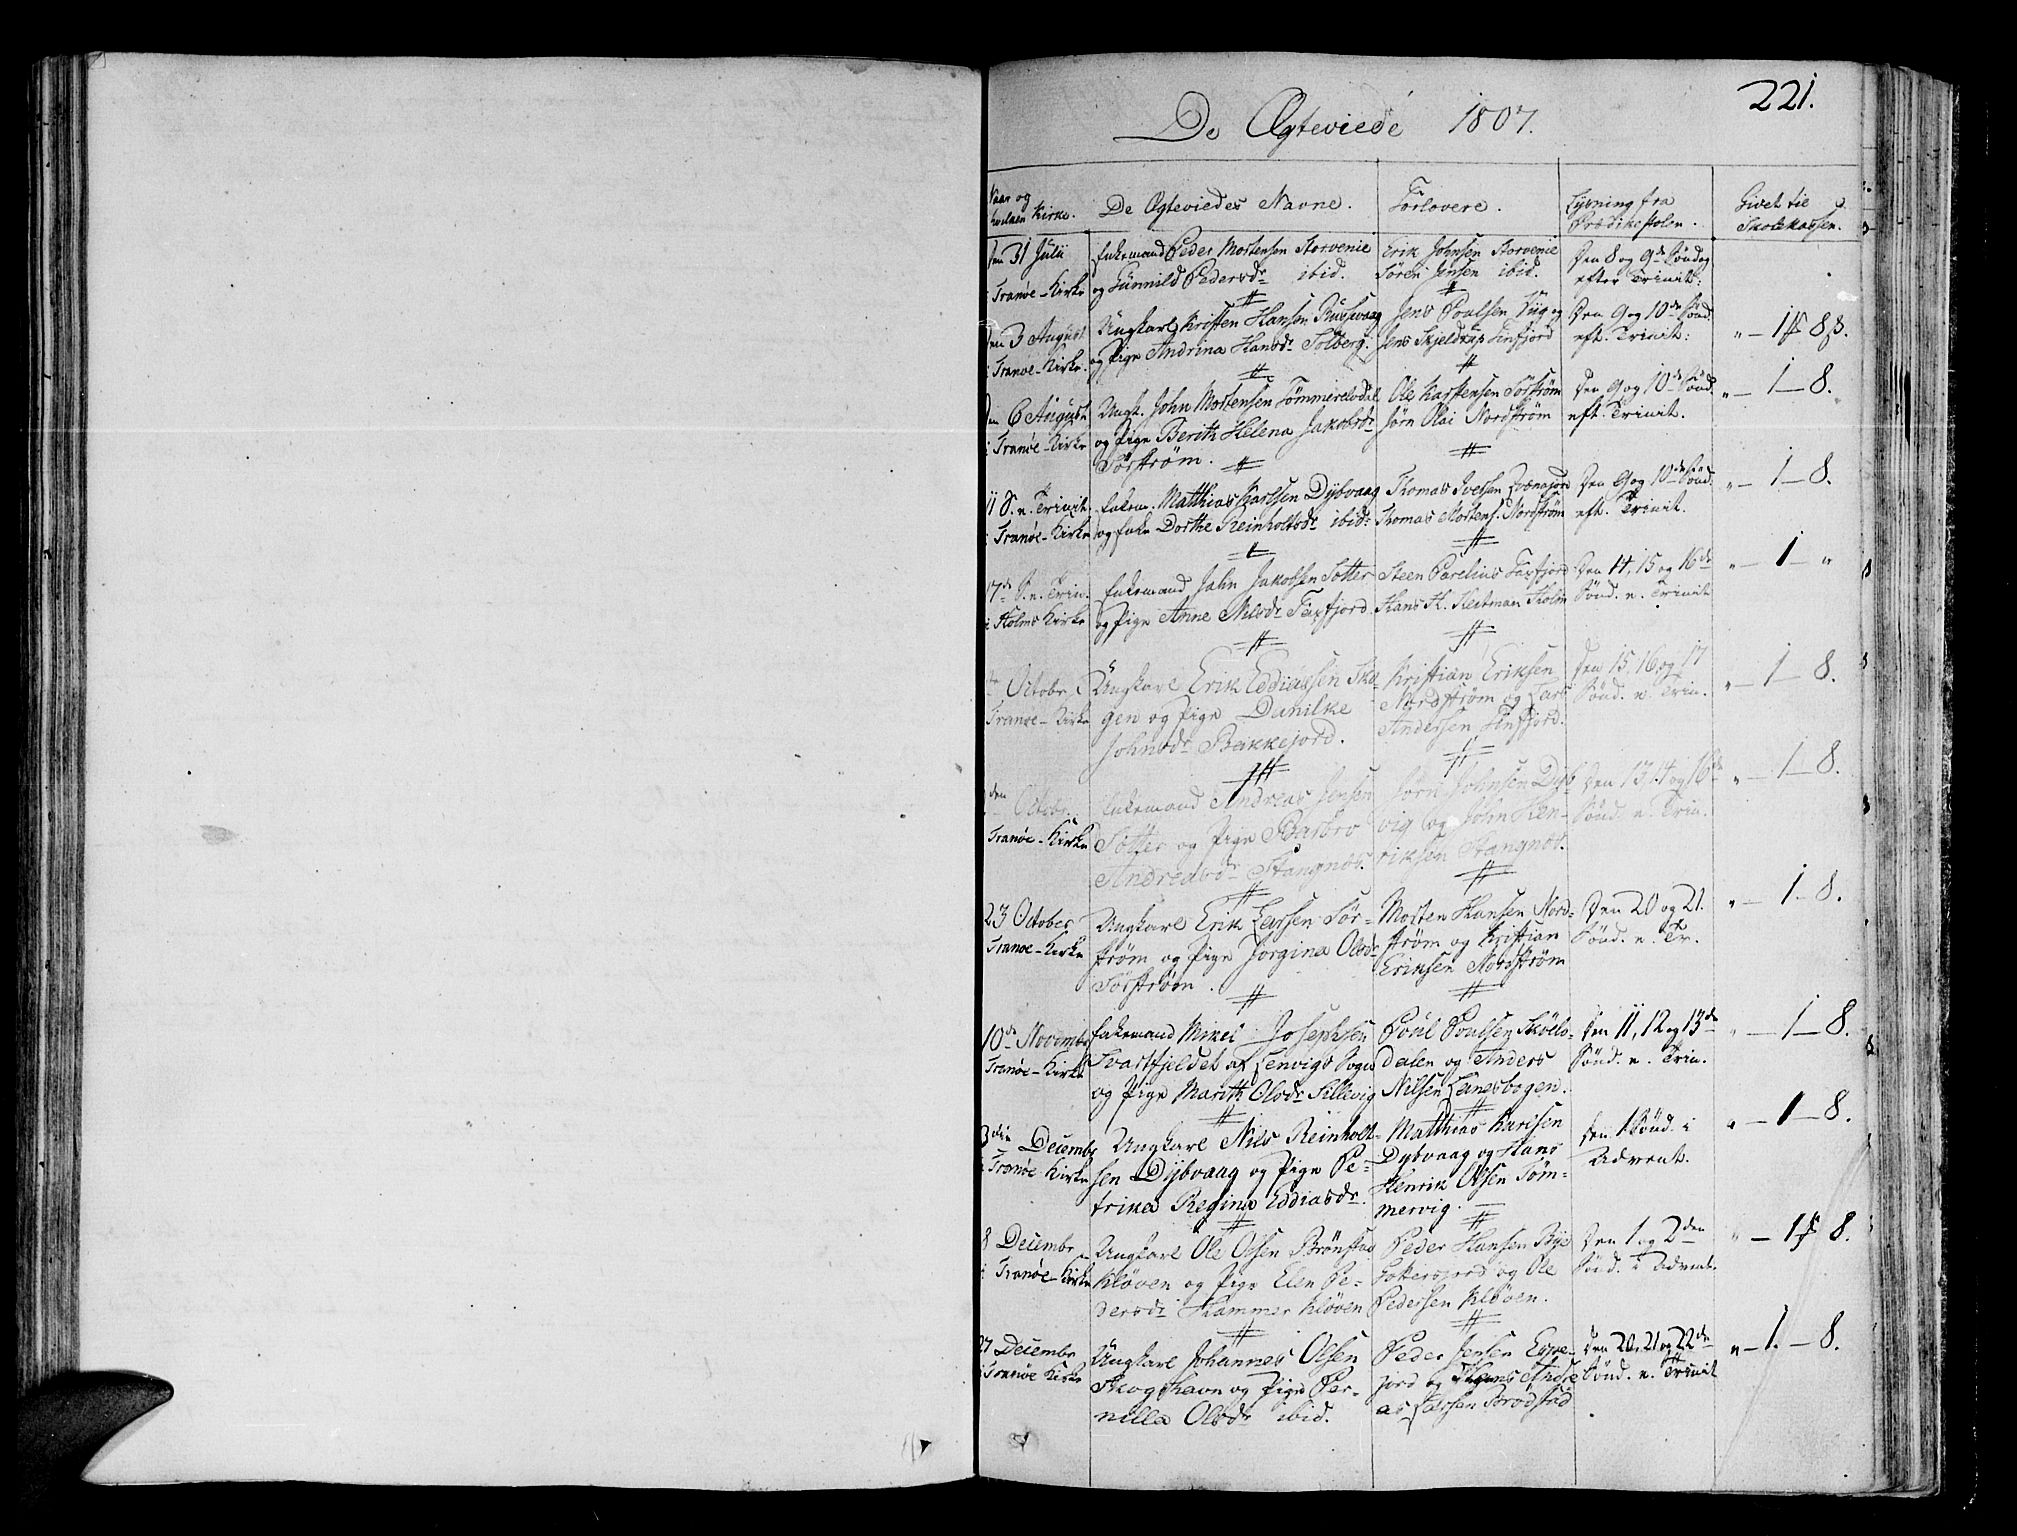 SATØ, Tranøy sokneprestkontor, I/Ia/Iaa/L0003kirke: Parish register (official) no. 3, 1807-1820, p. 221